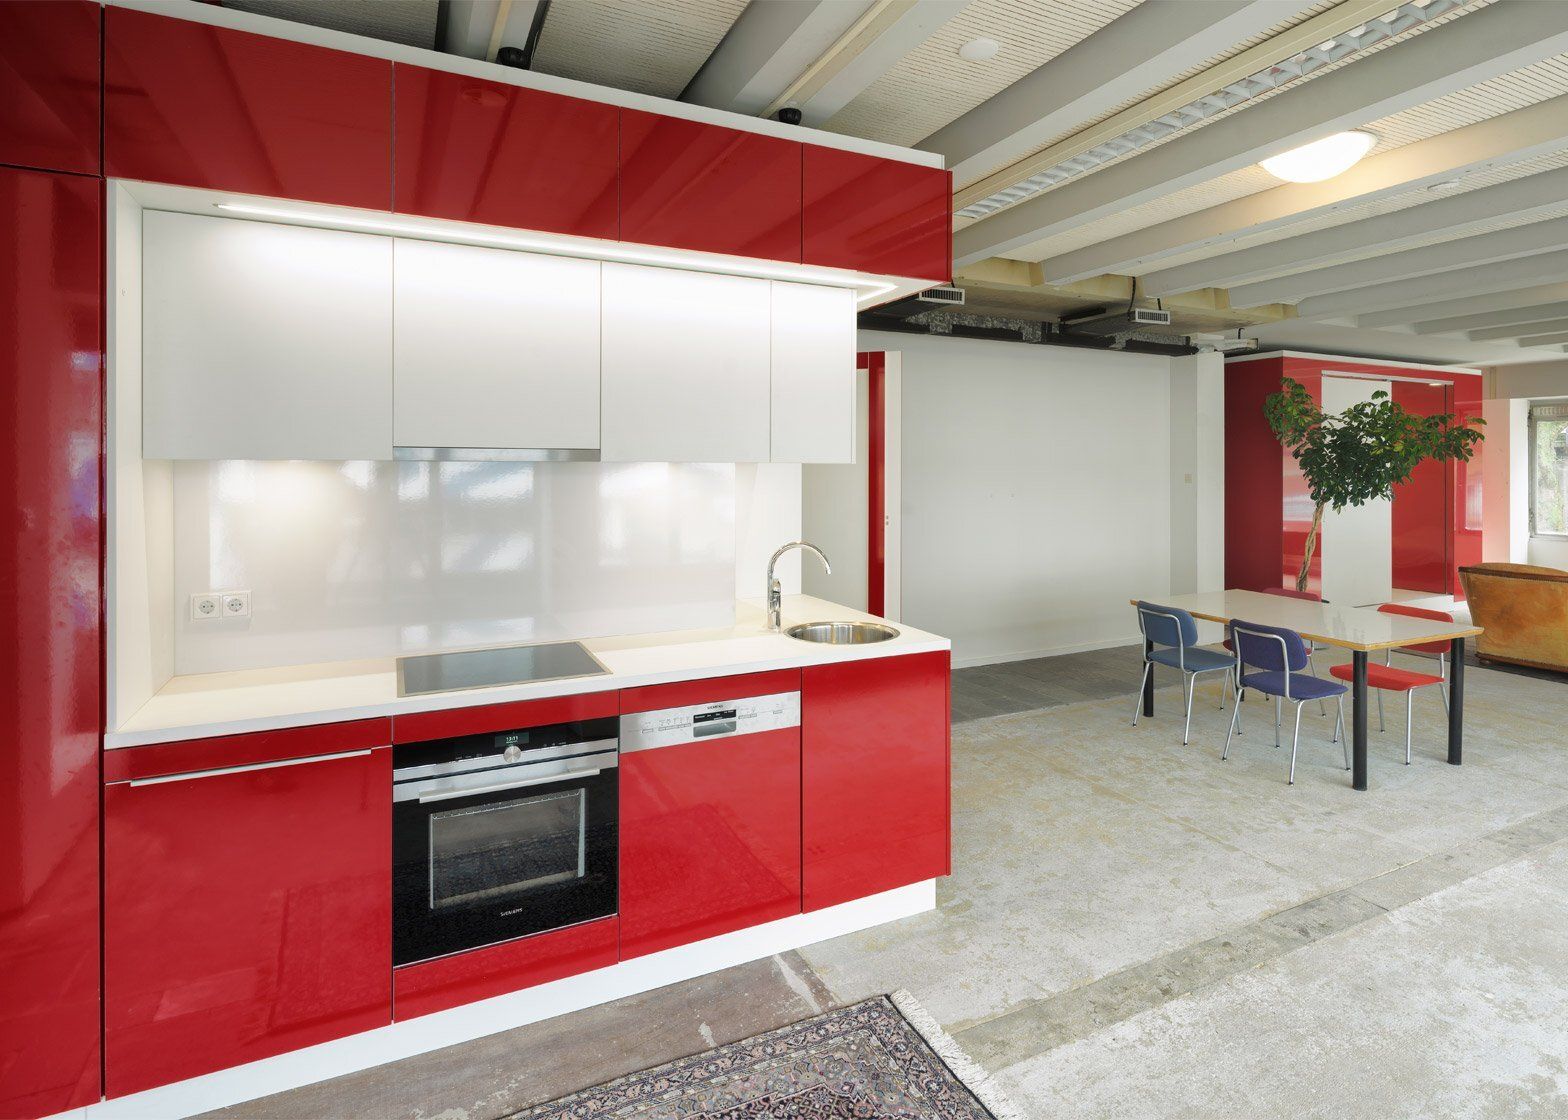 The Hub - Kraaijvanger - Rotterdam - Modular Kitchen and Bathroom 1 - Humble Homes